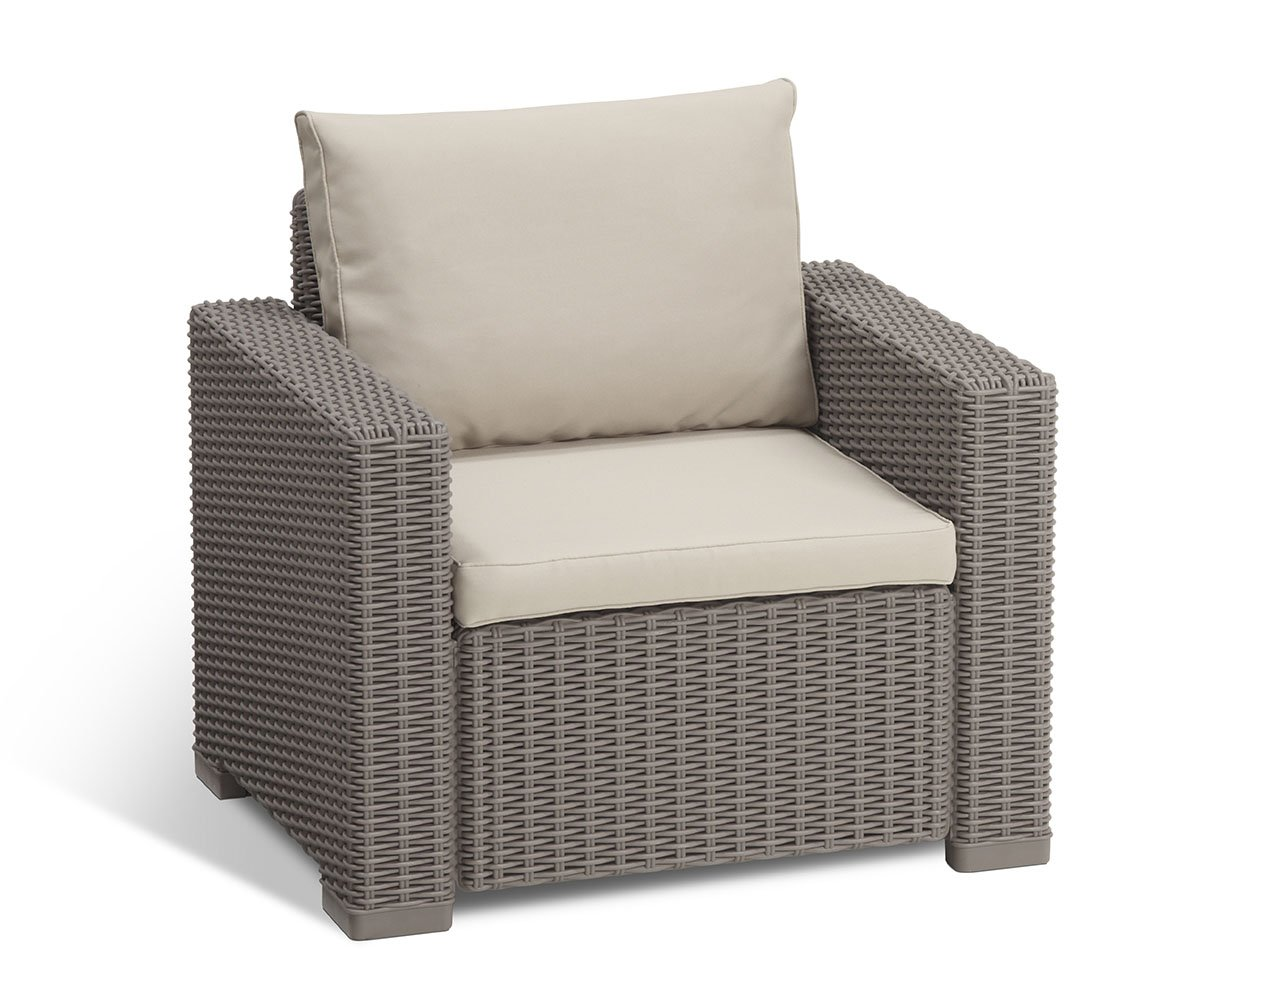 Keter California All Weather Outdoor Patio Armchair with Cushions in a Resin Plastic Wicker Pattern, Cappuccino/Sand